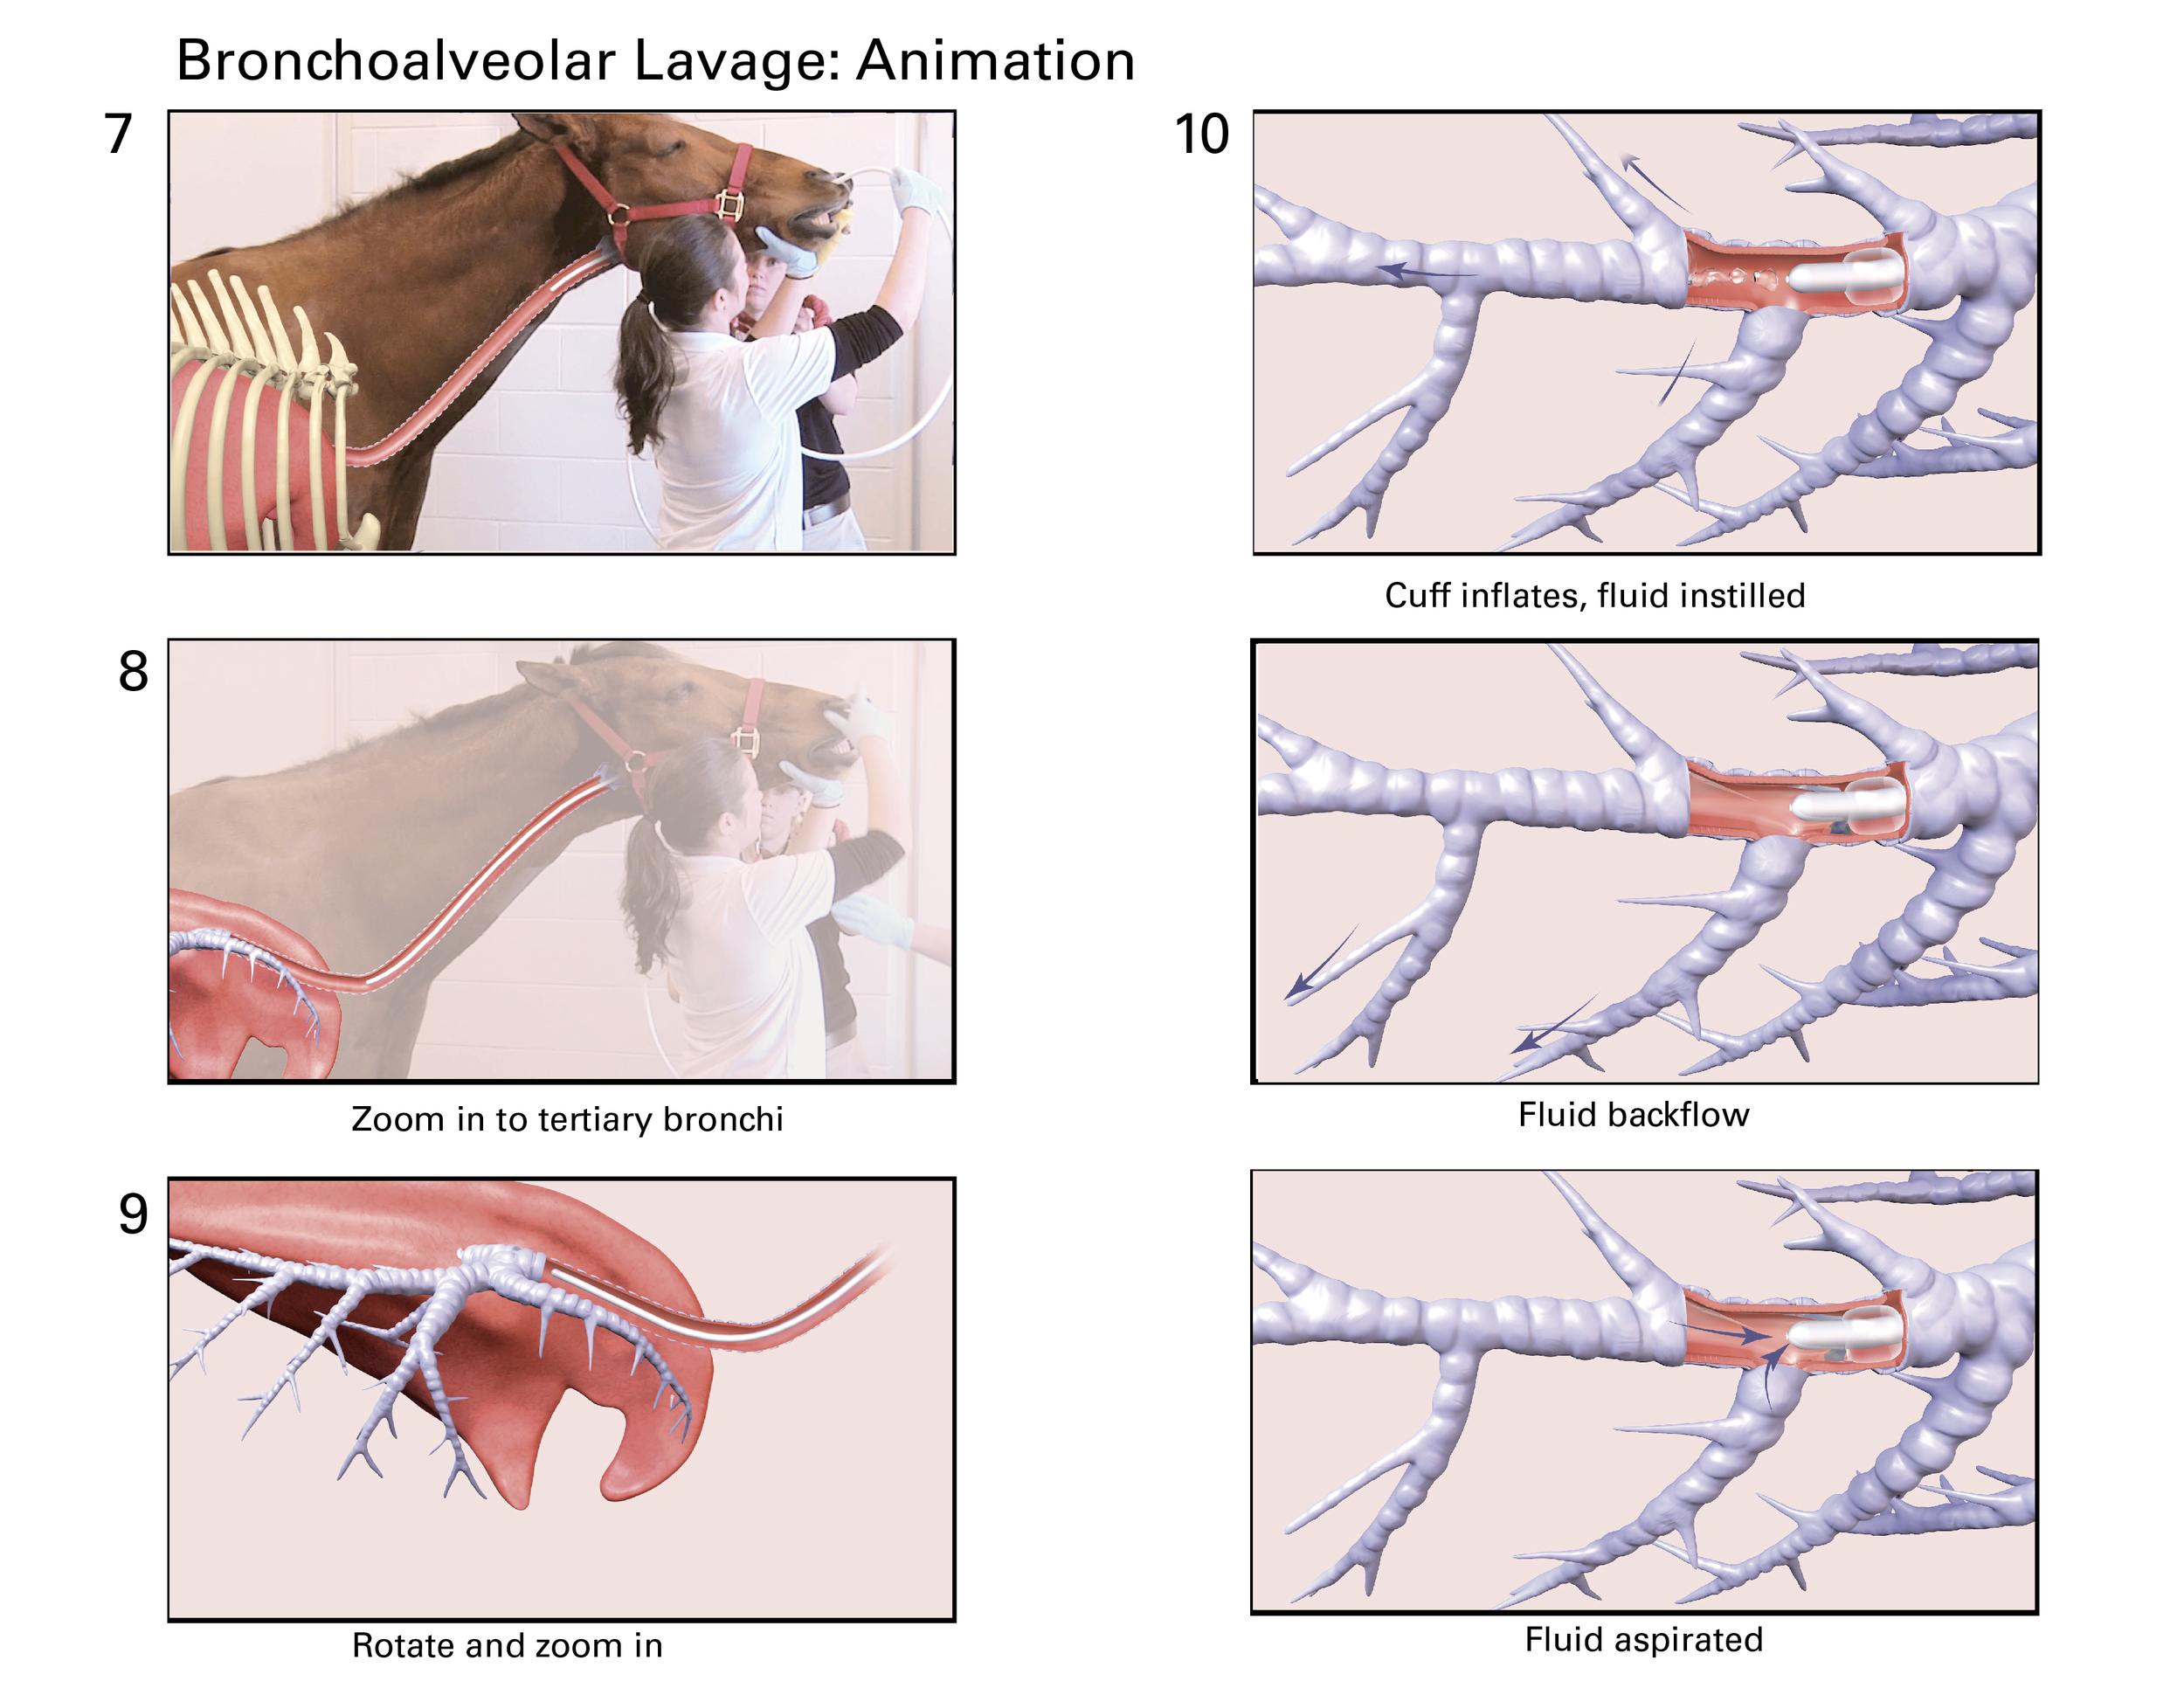 Final screenshots from Bronchoalveolar Lavage animation for use in Equine Lower Respiratory Disease Diagnostics iBook for the UGA College of Veterinary Medicine.  Changes from original storyboard sketches due to footage, and use of illustrations to represent initial steps.  ©2016 UGA